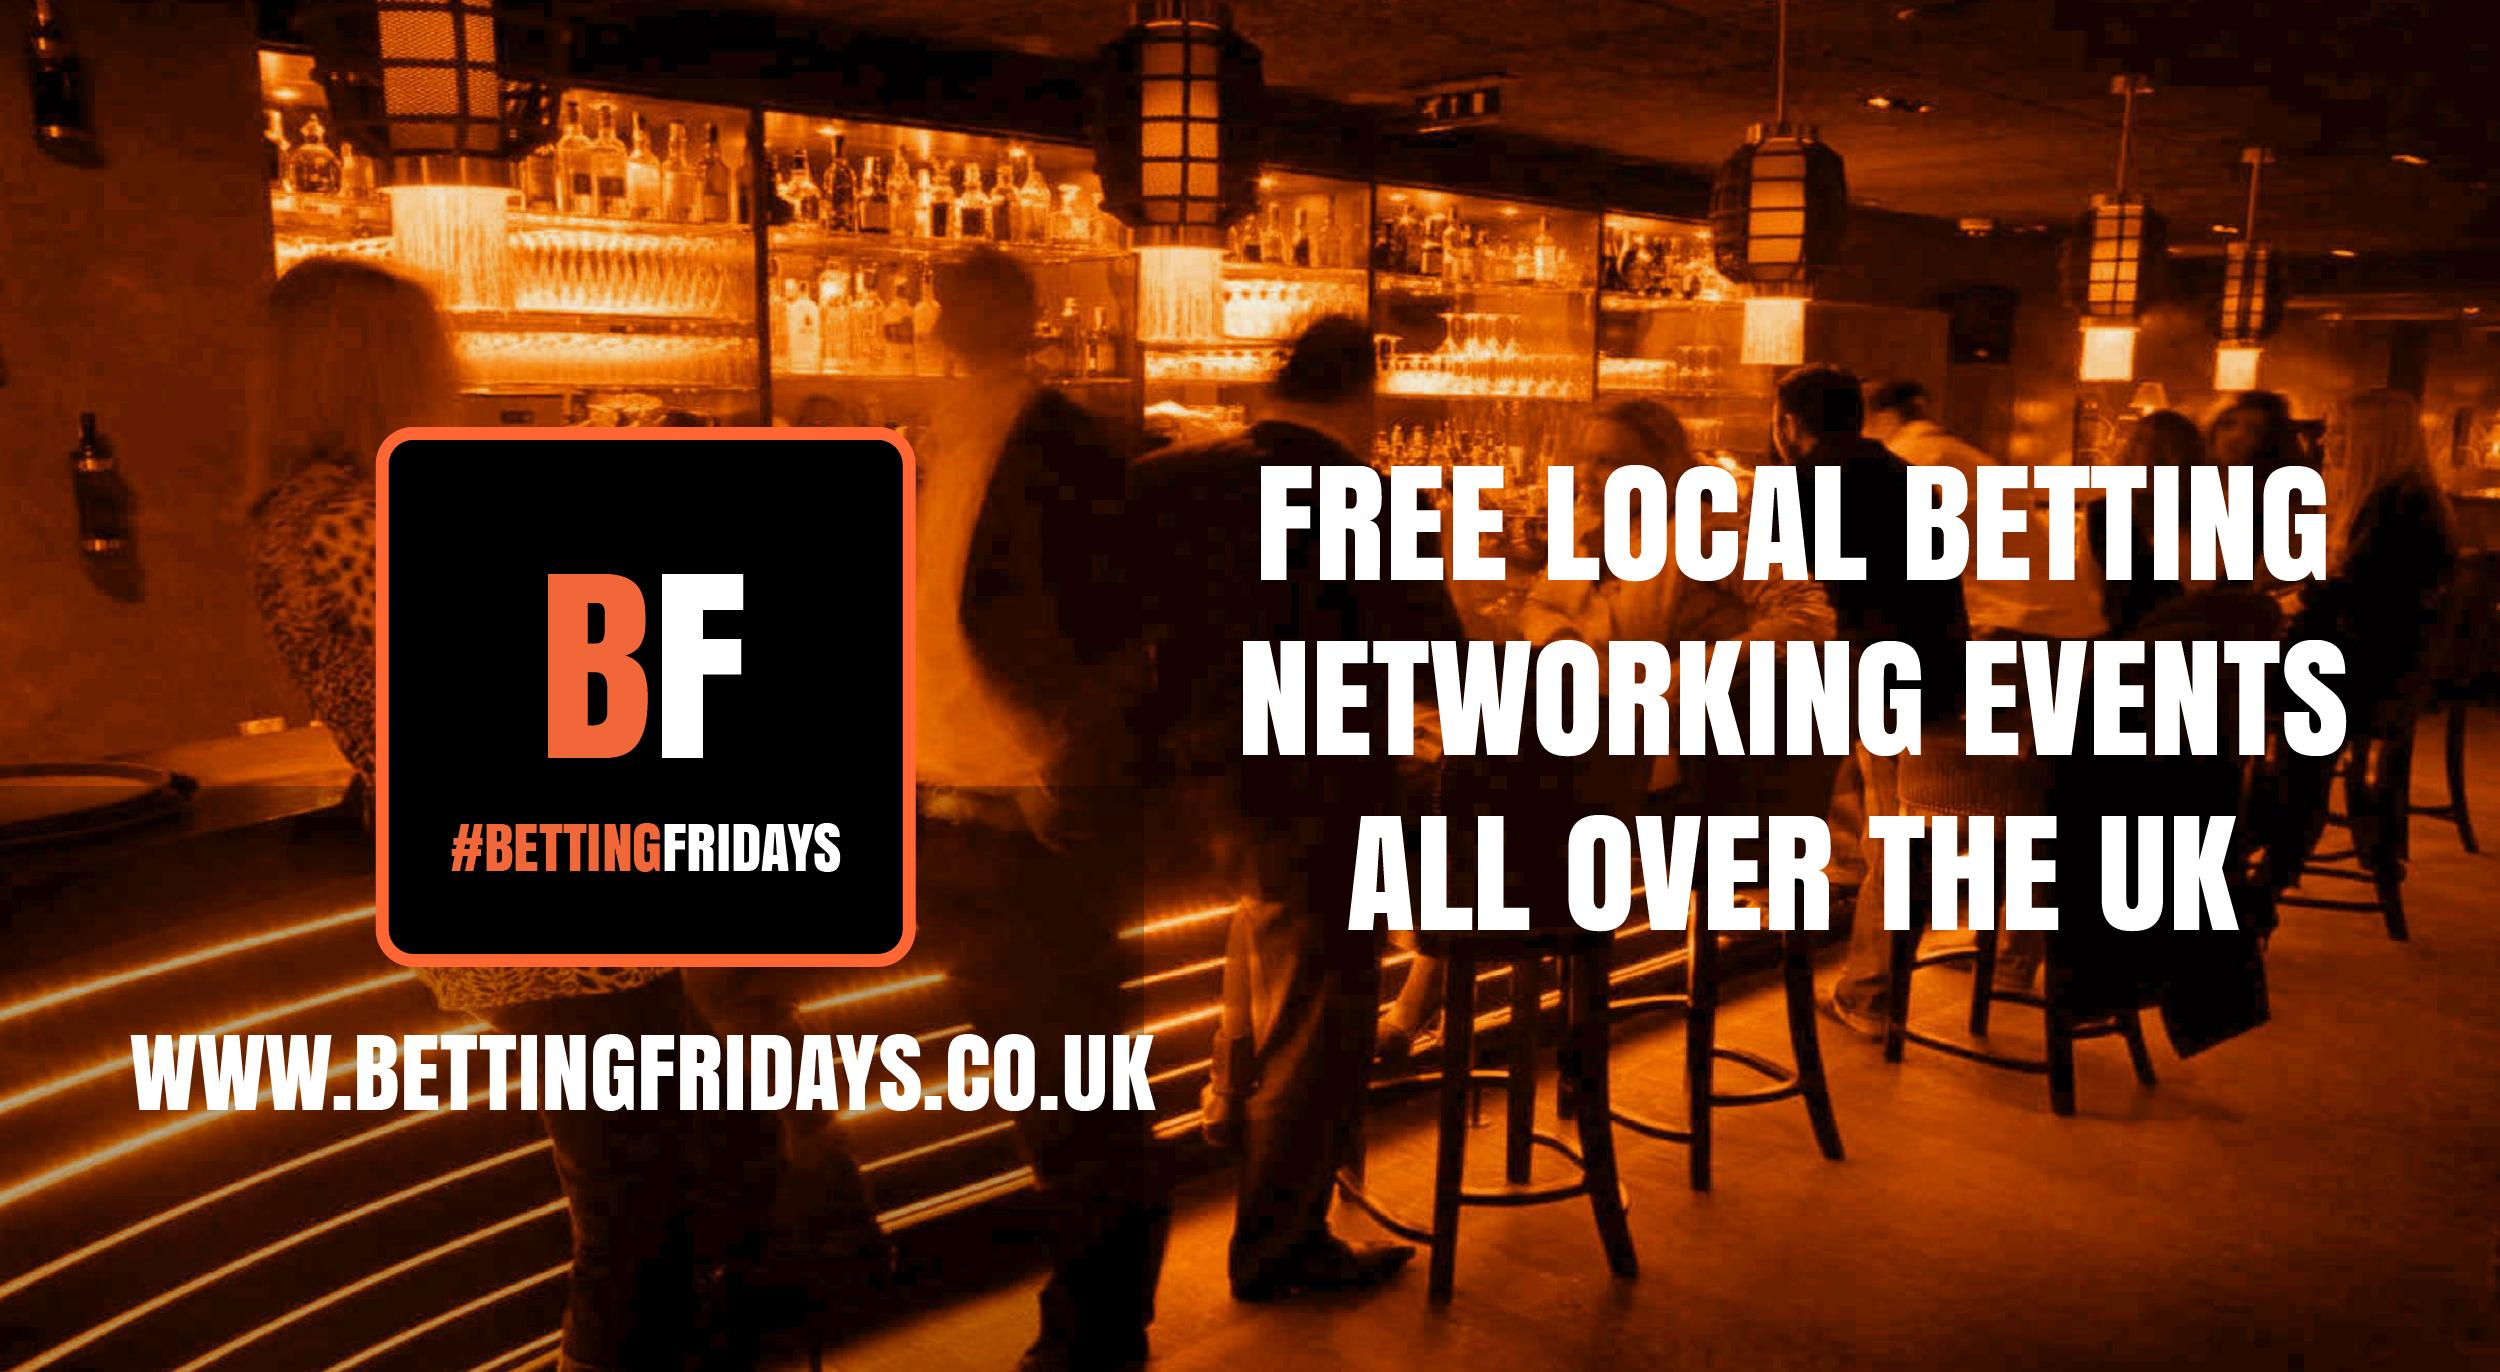 Betting Fridays! Free betting networking event in Bootle